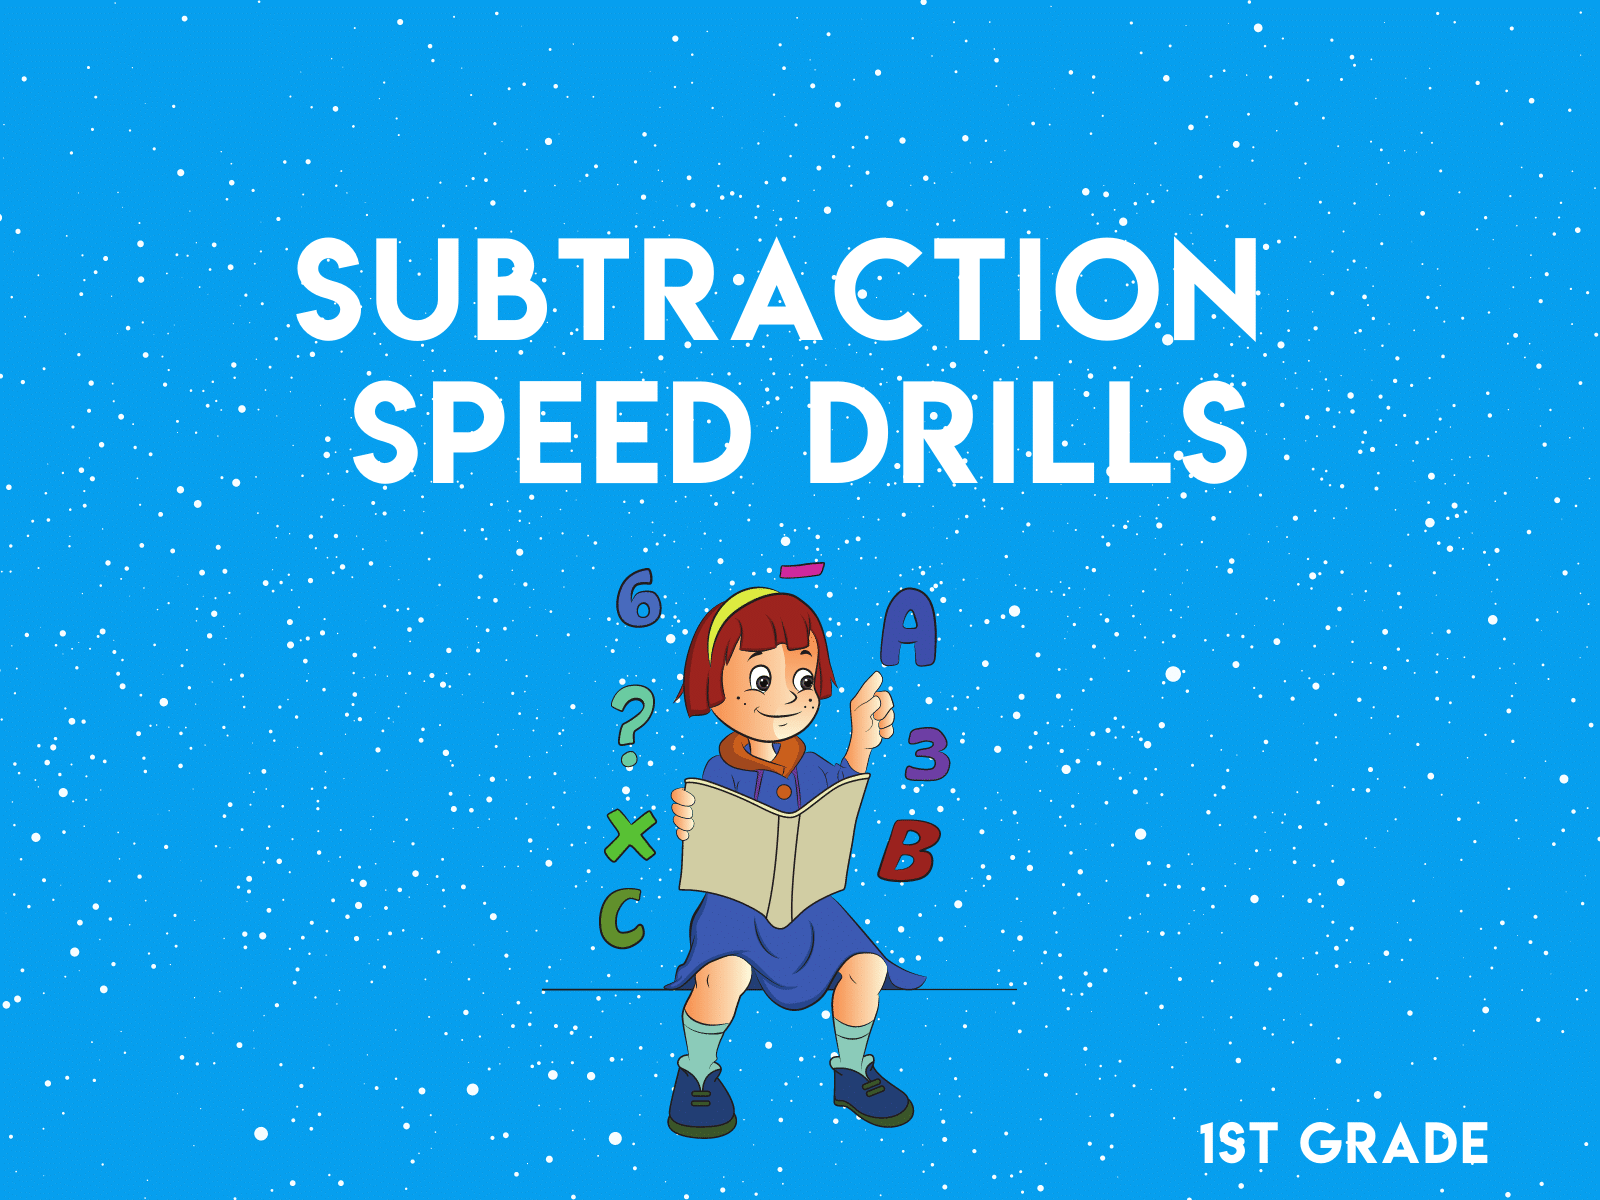 Free subtraction speed drills for first grade math resource.